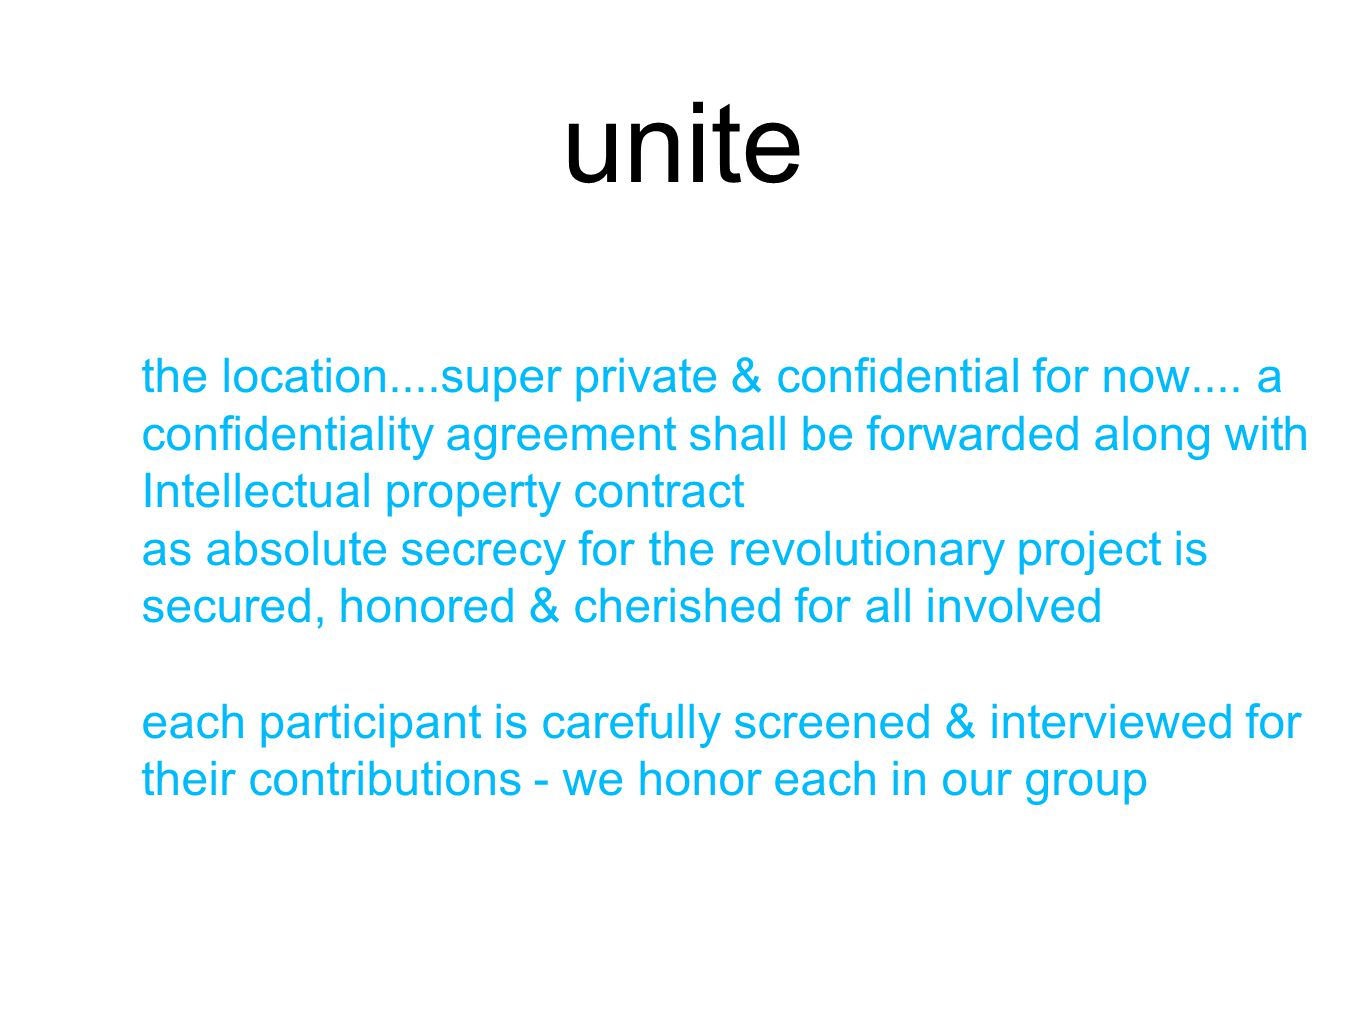 unite the location....super private & confidential for now....